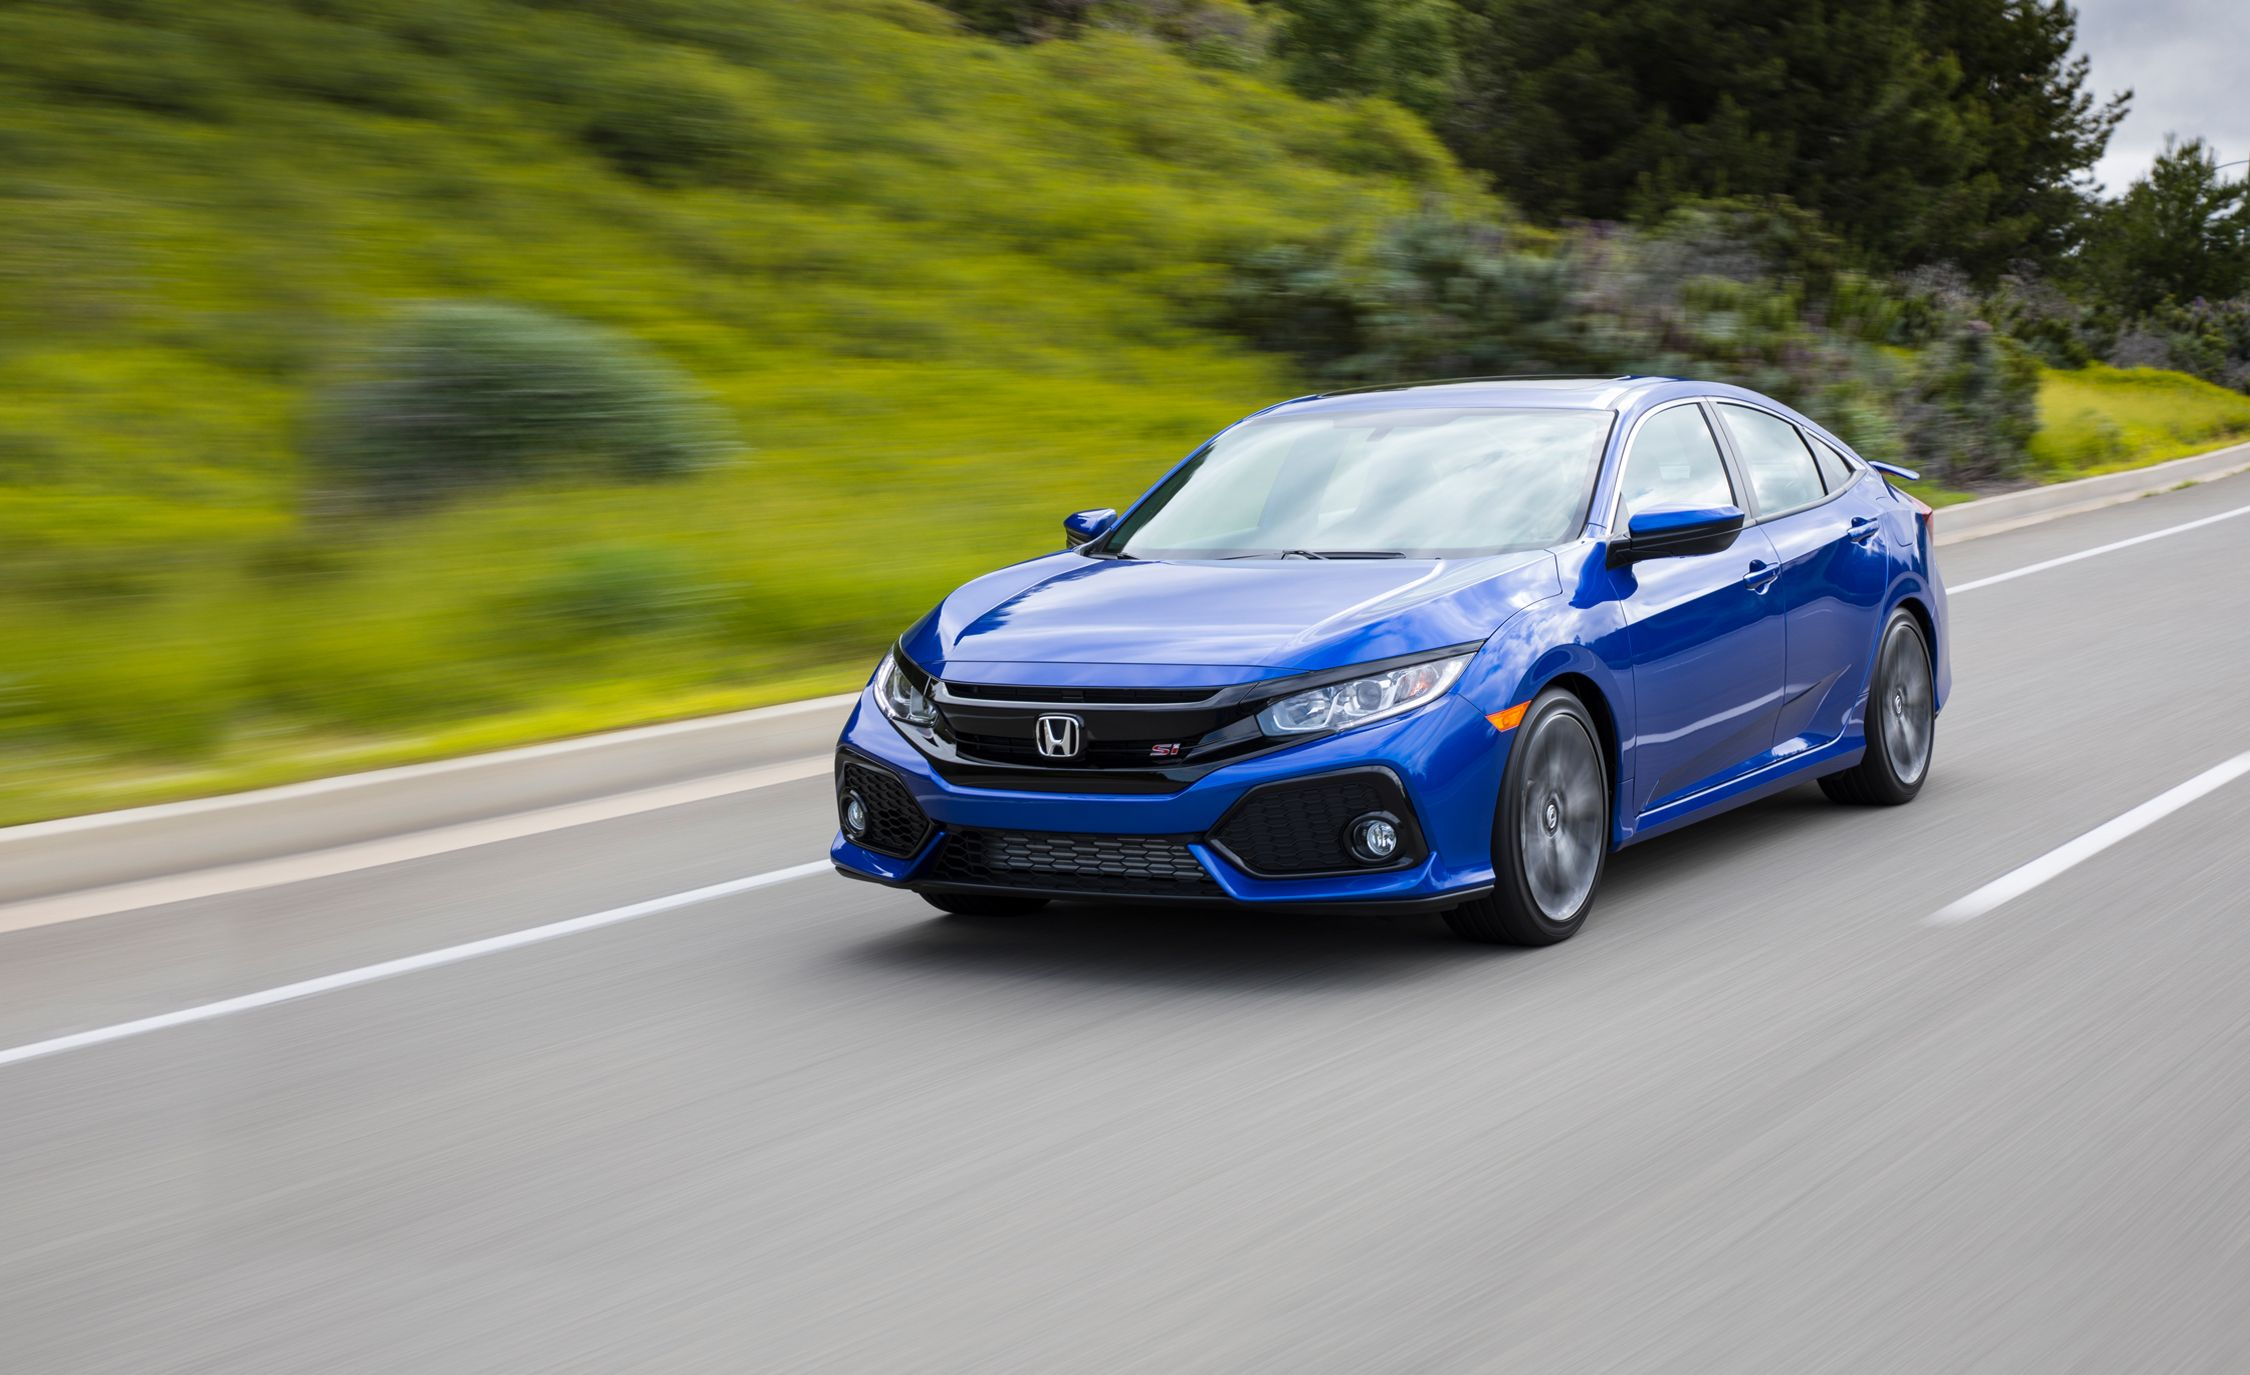 2017 Honda Civic Si First Drive | Review | Car and Driver